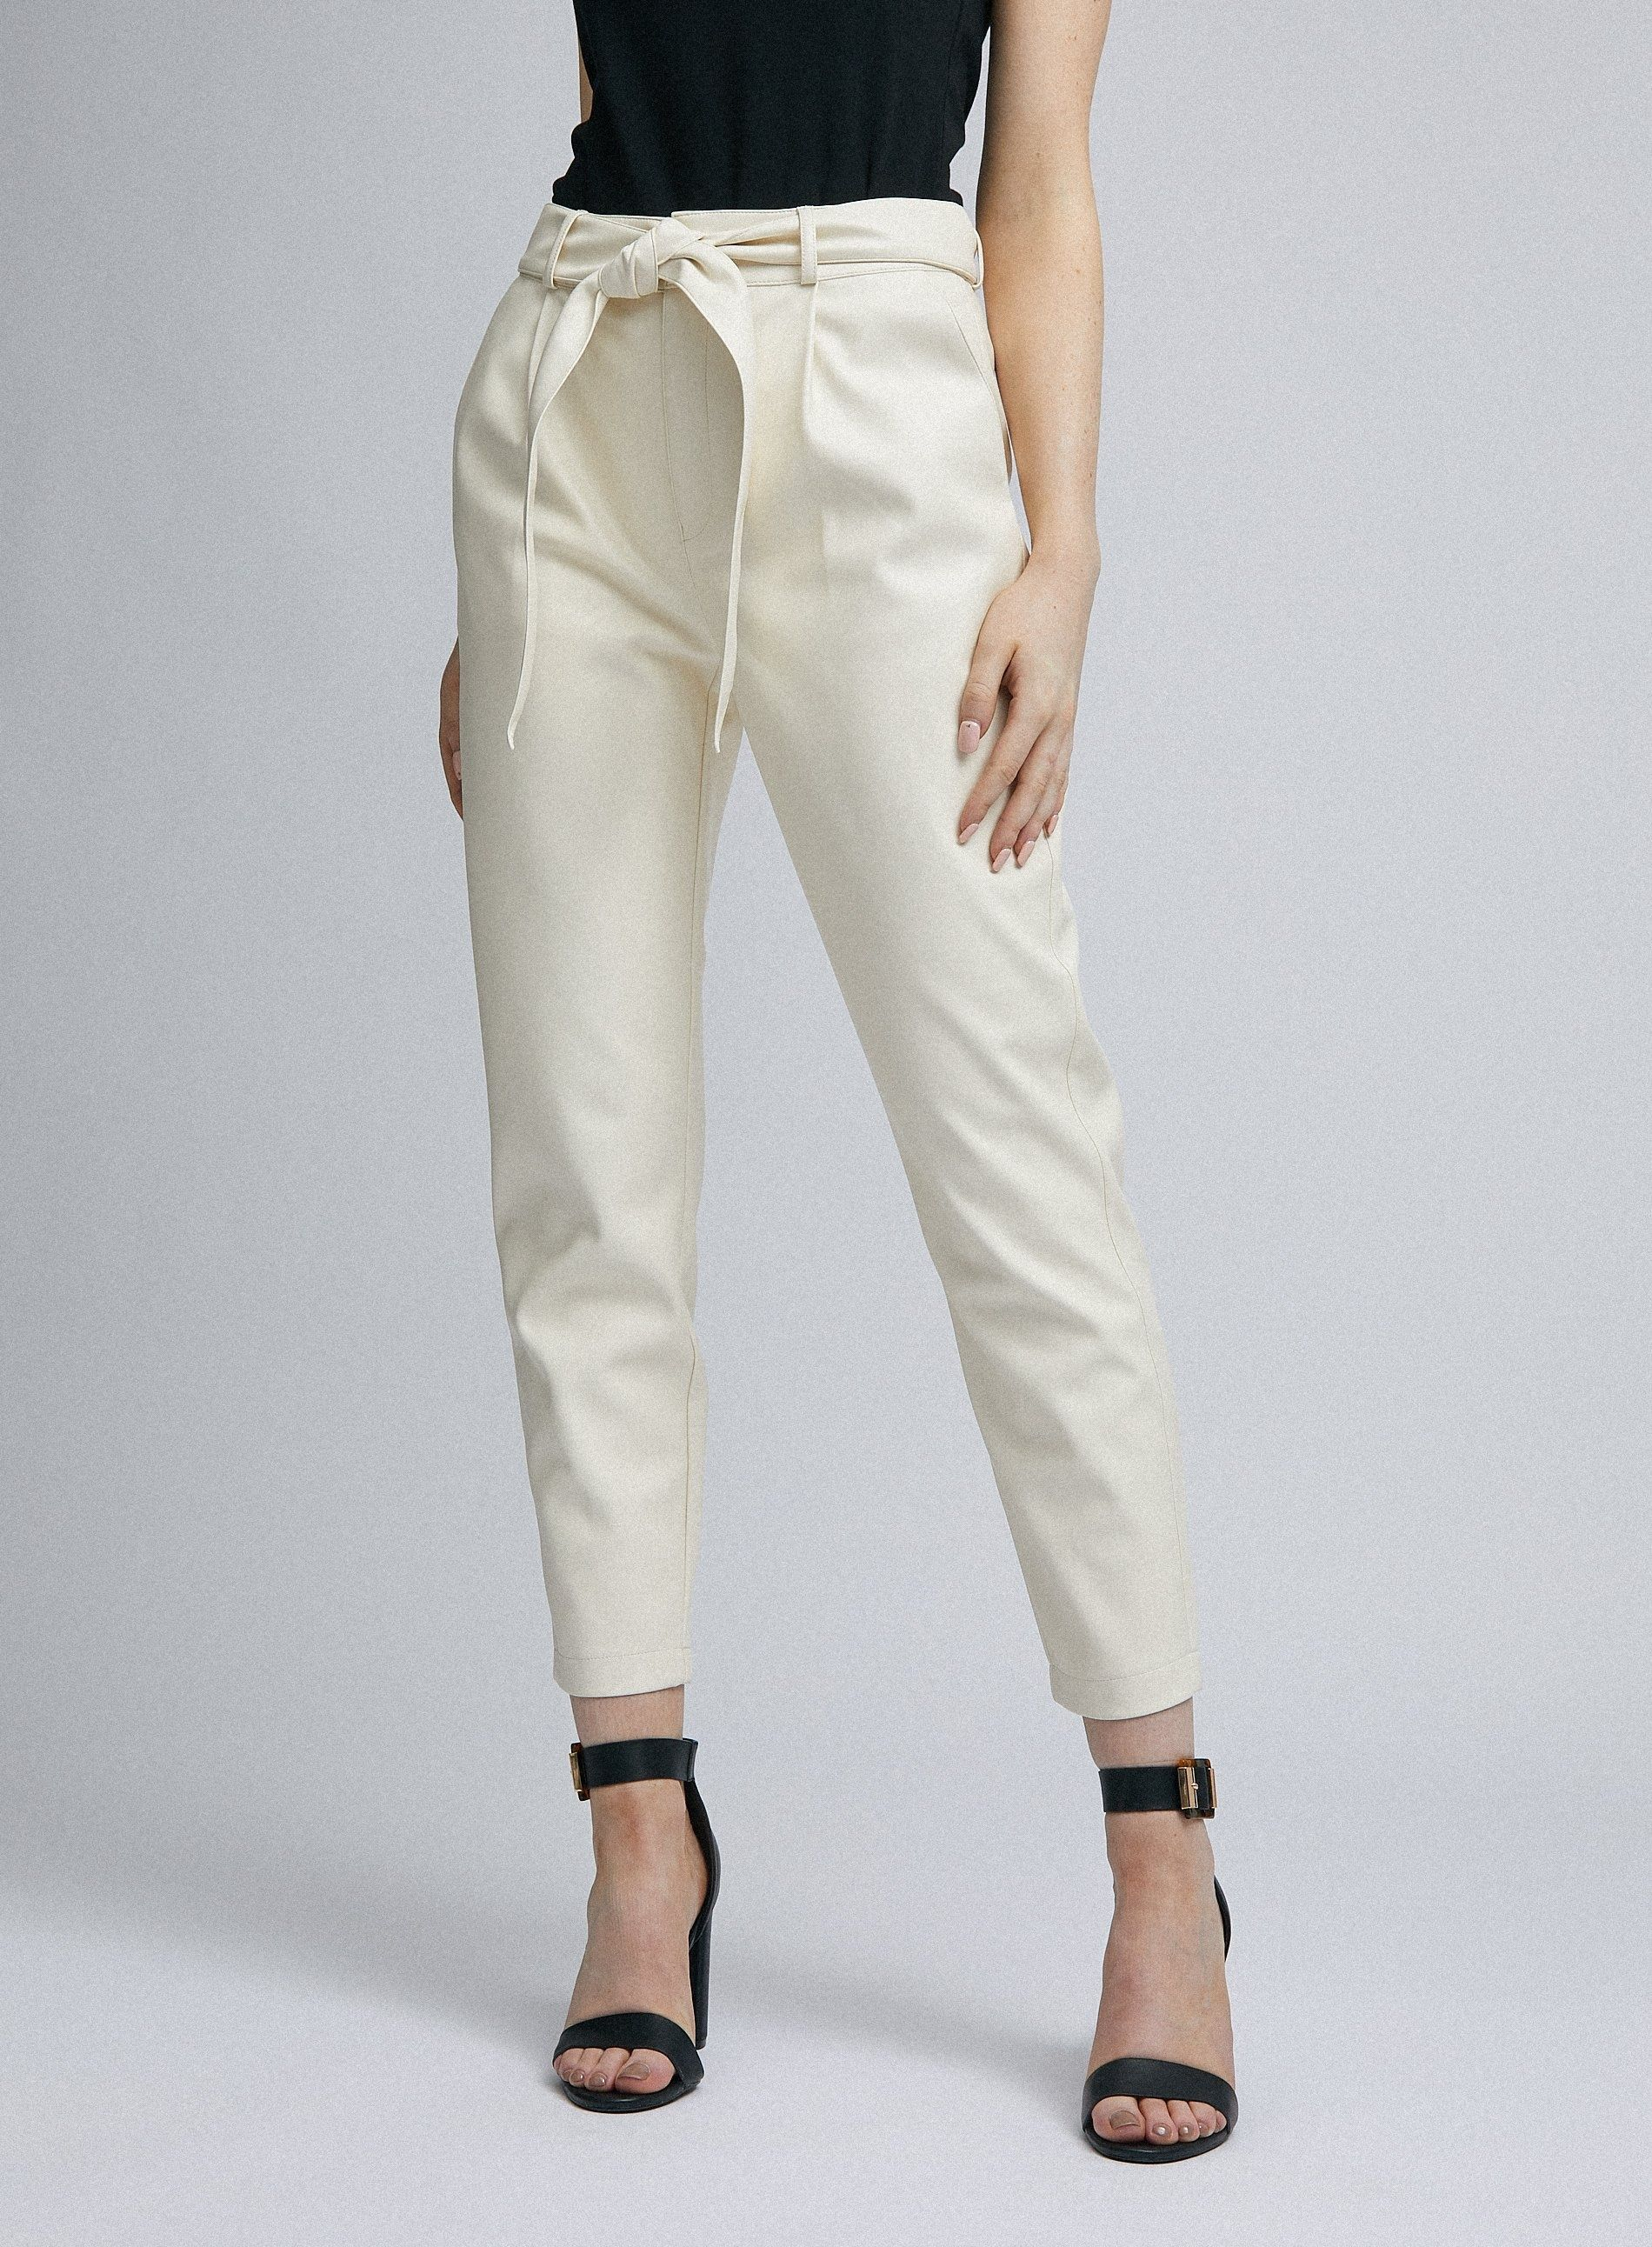 Dorothy Perkins Womens Ivory PU Belted Trousers Front Tie Pleated Pants